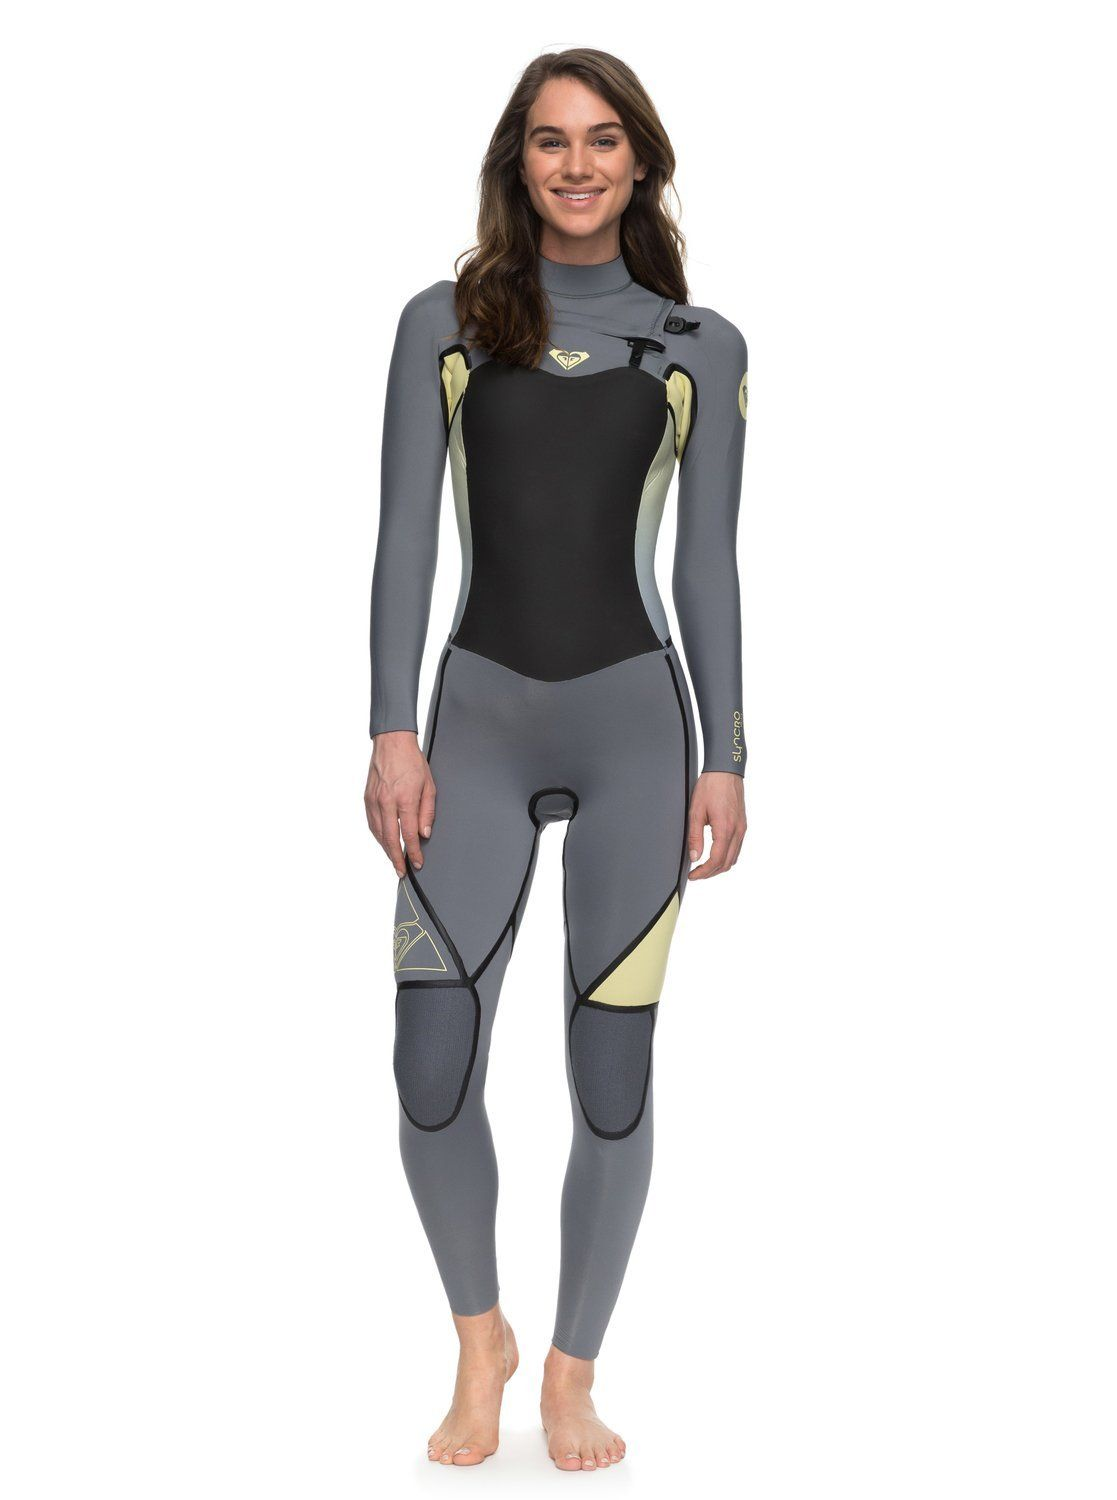 fb77e5c2be Roxy Womens Roxy Syncro 3 2Mm - Chest Zip Full Wetsuit - Women - 12 ...